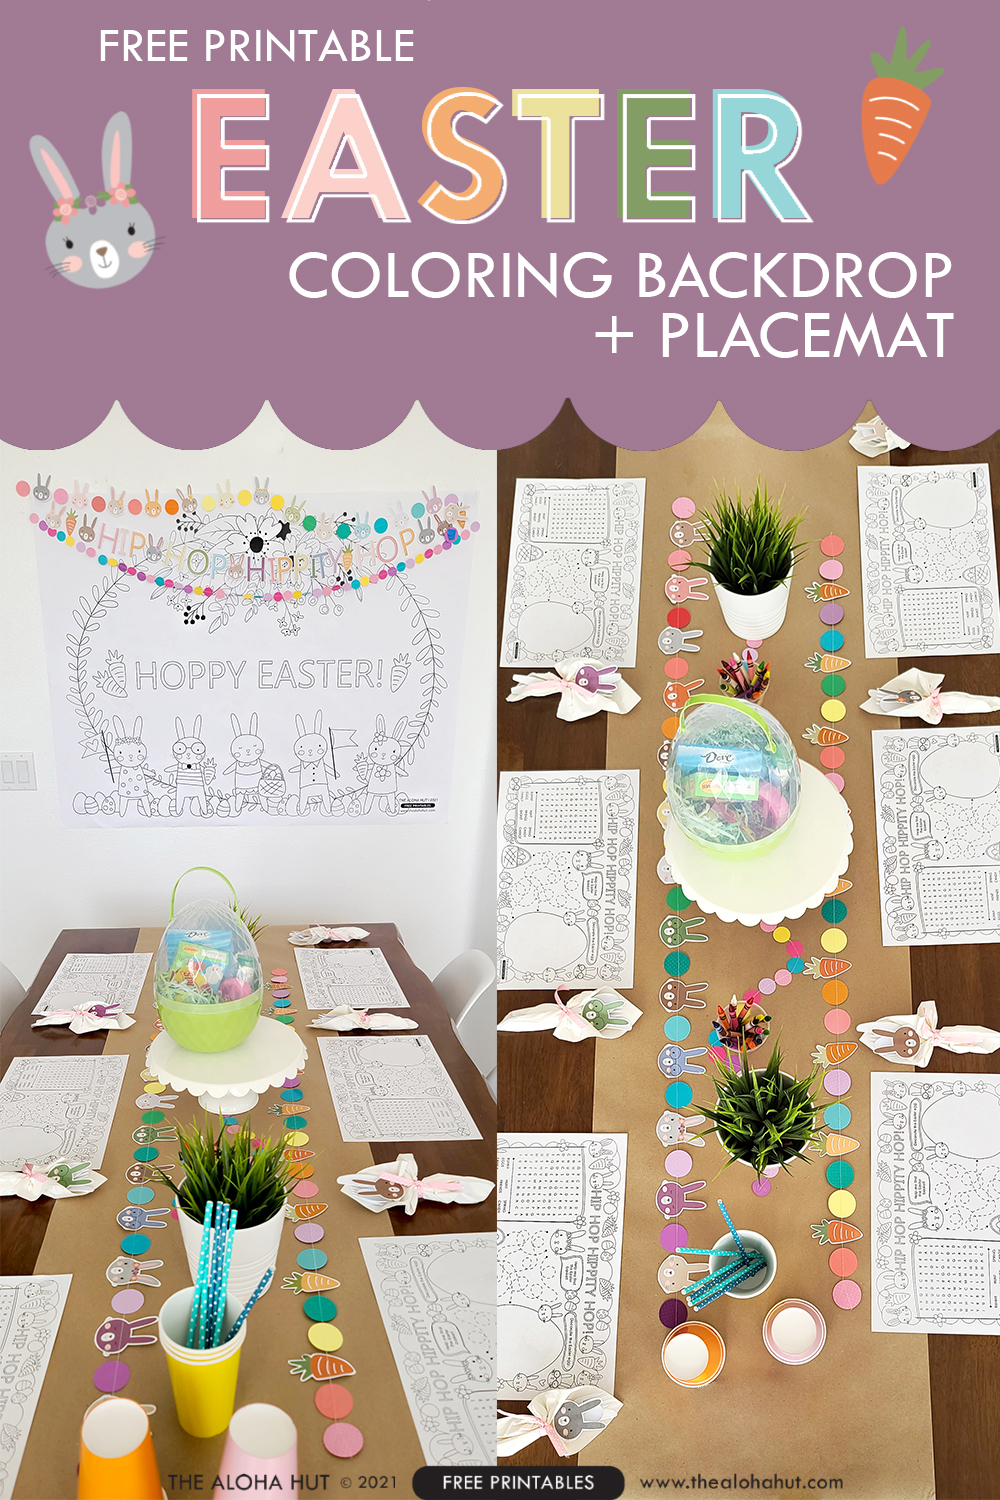 Easter Coloring Backdrop + Placemat free printables 2 by the Aloha Hut